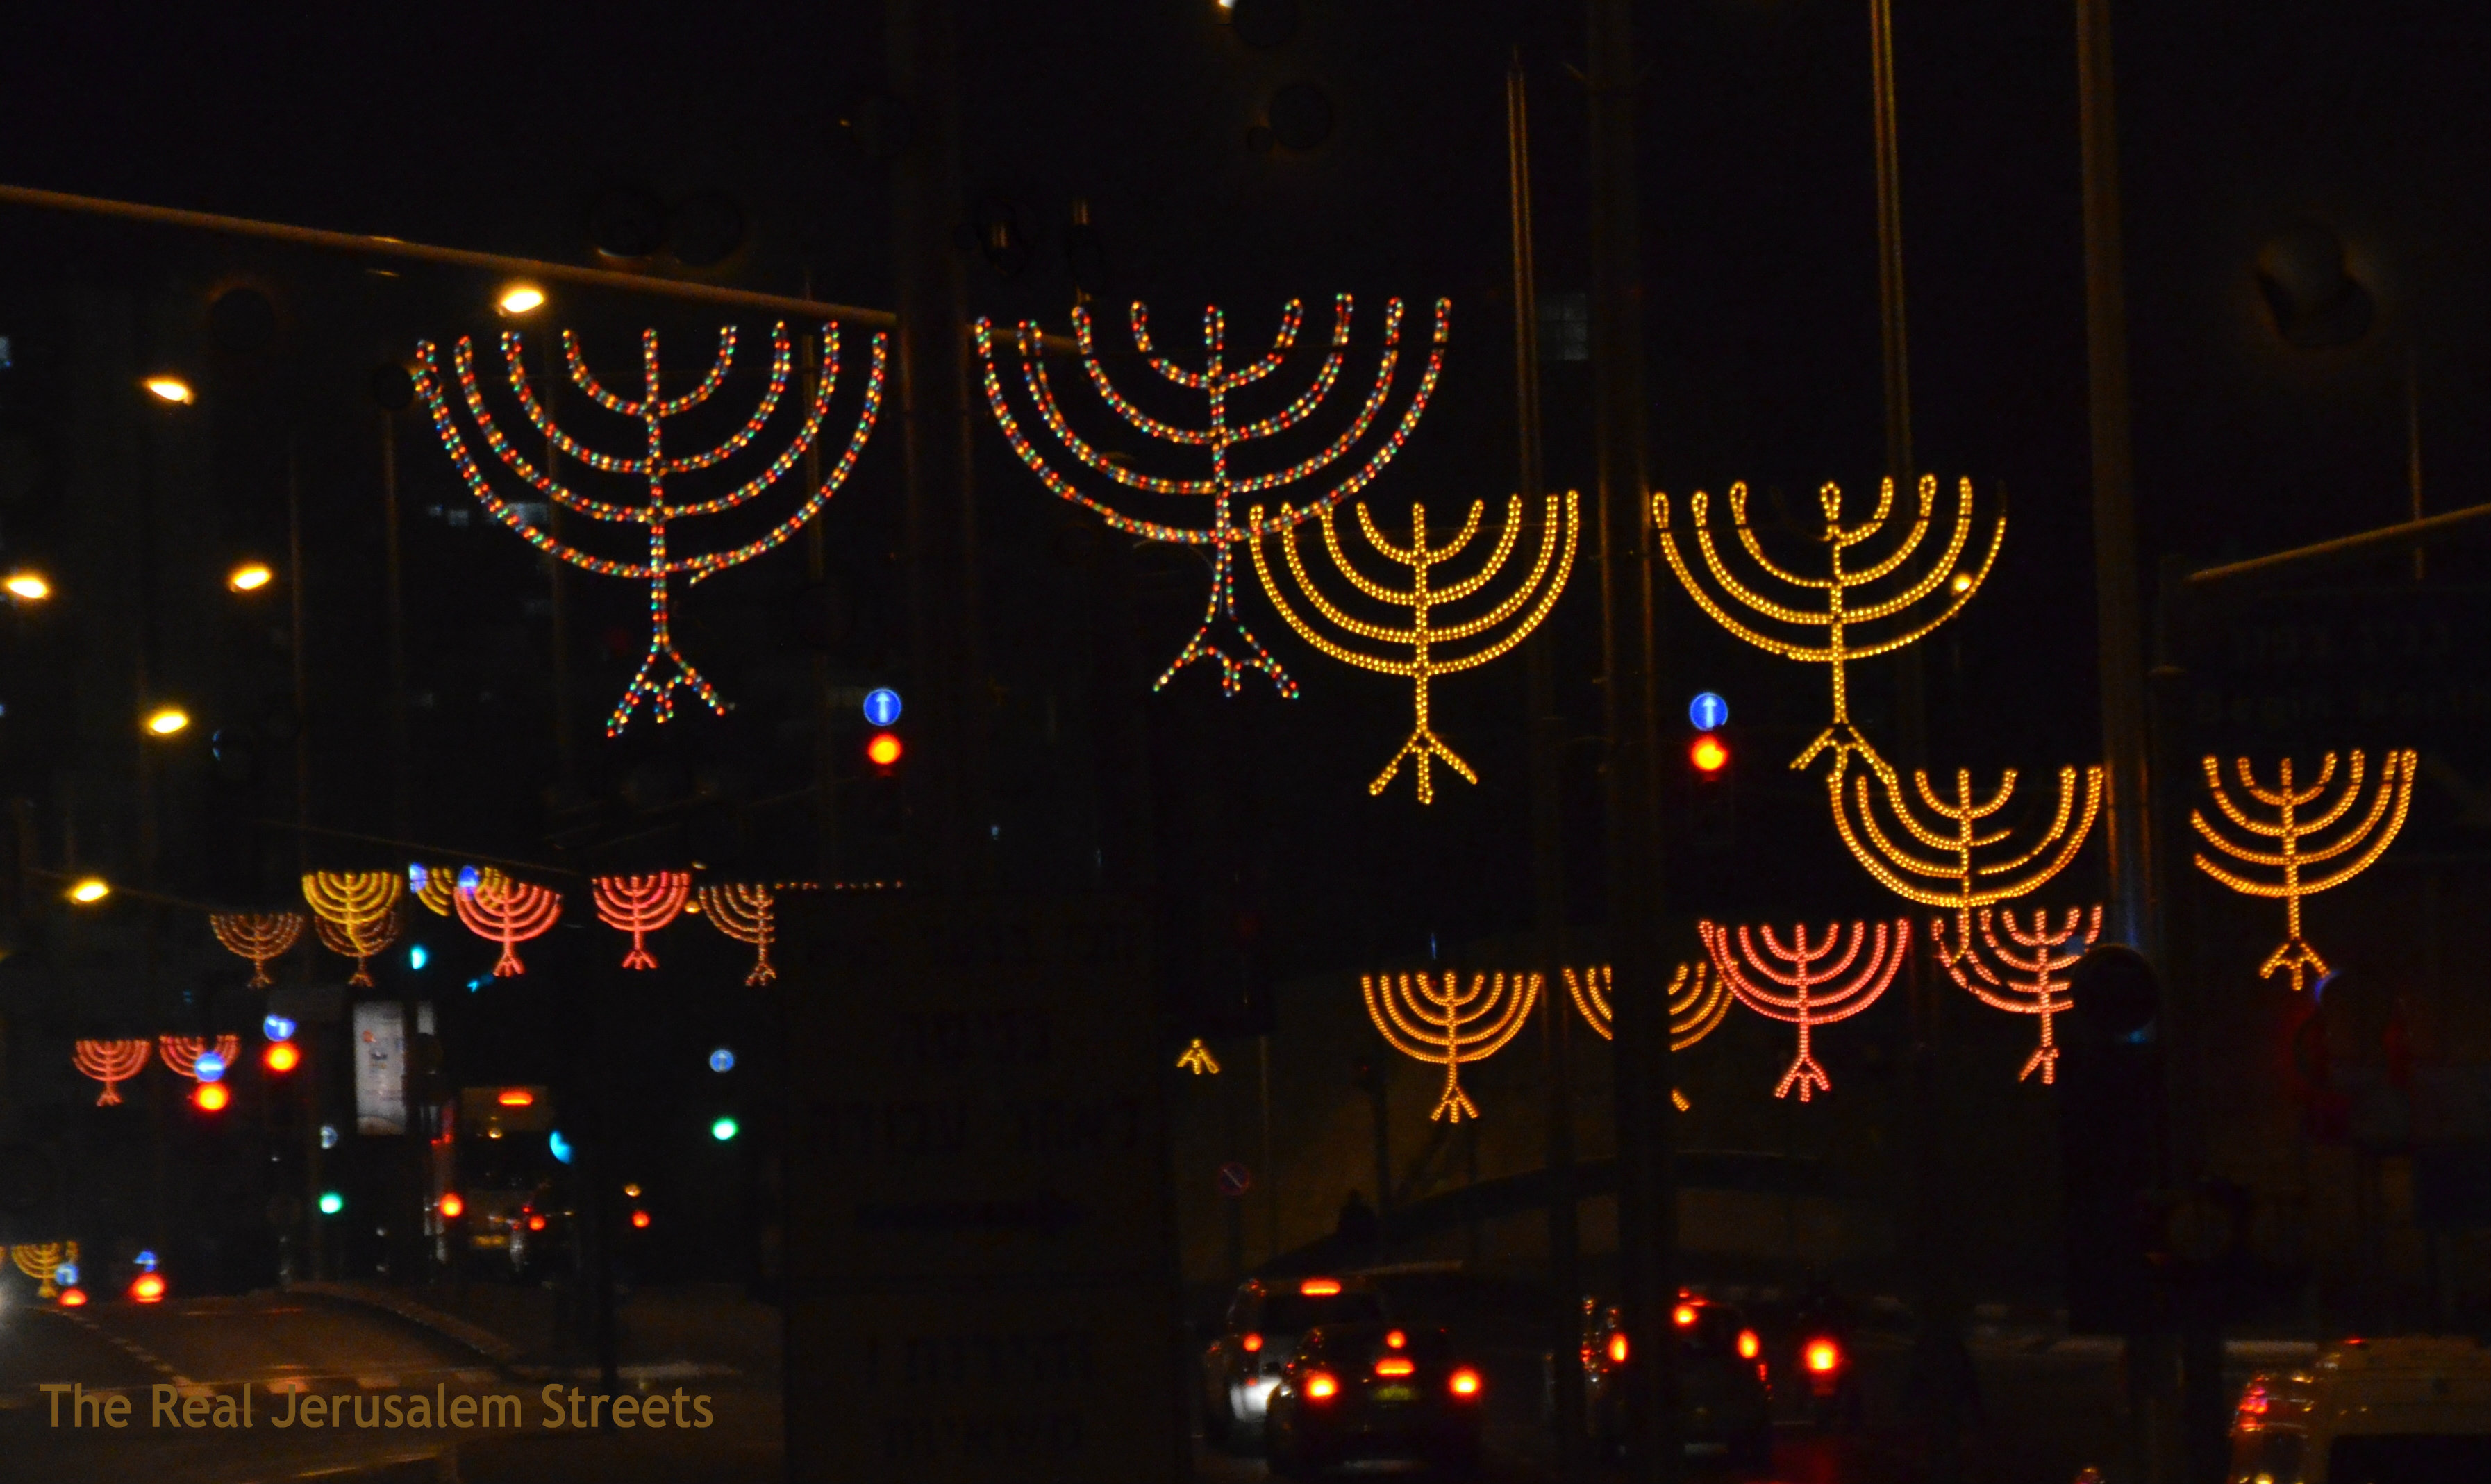 image street decorations, photo streets on Hanukkah, Jerusalem photo streets decorations